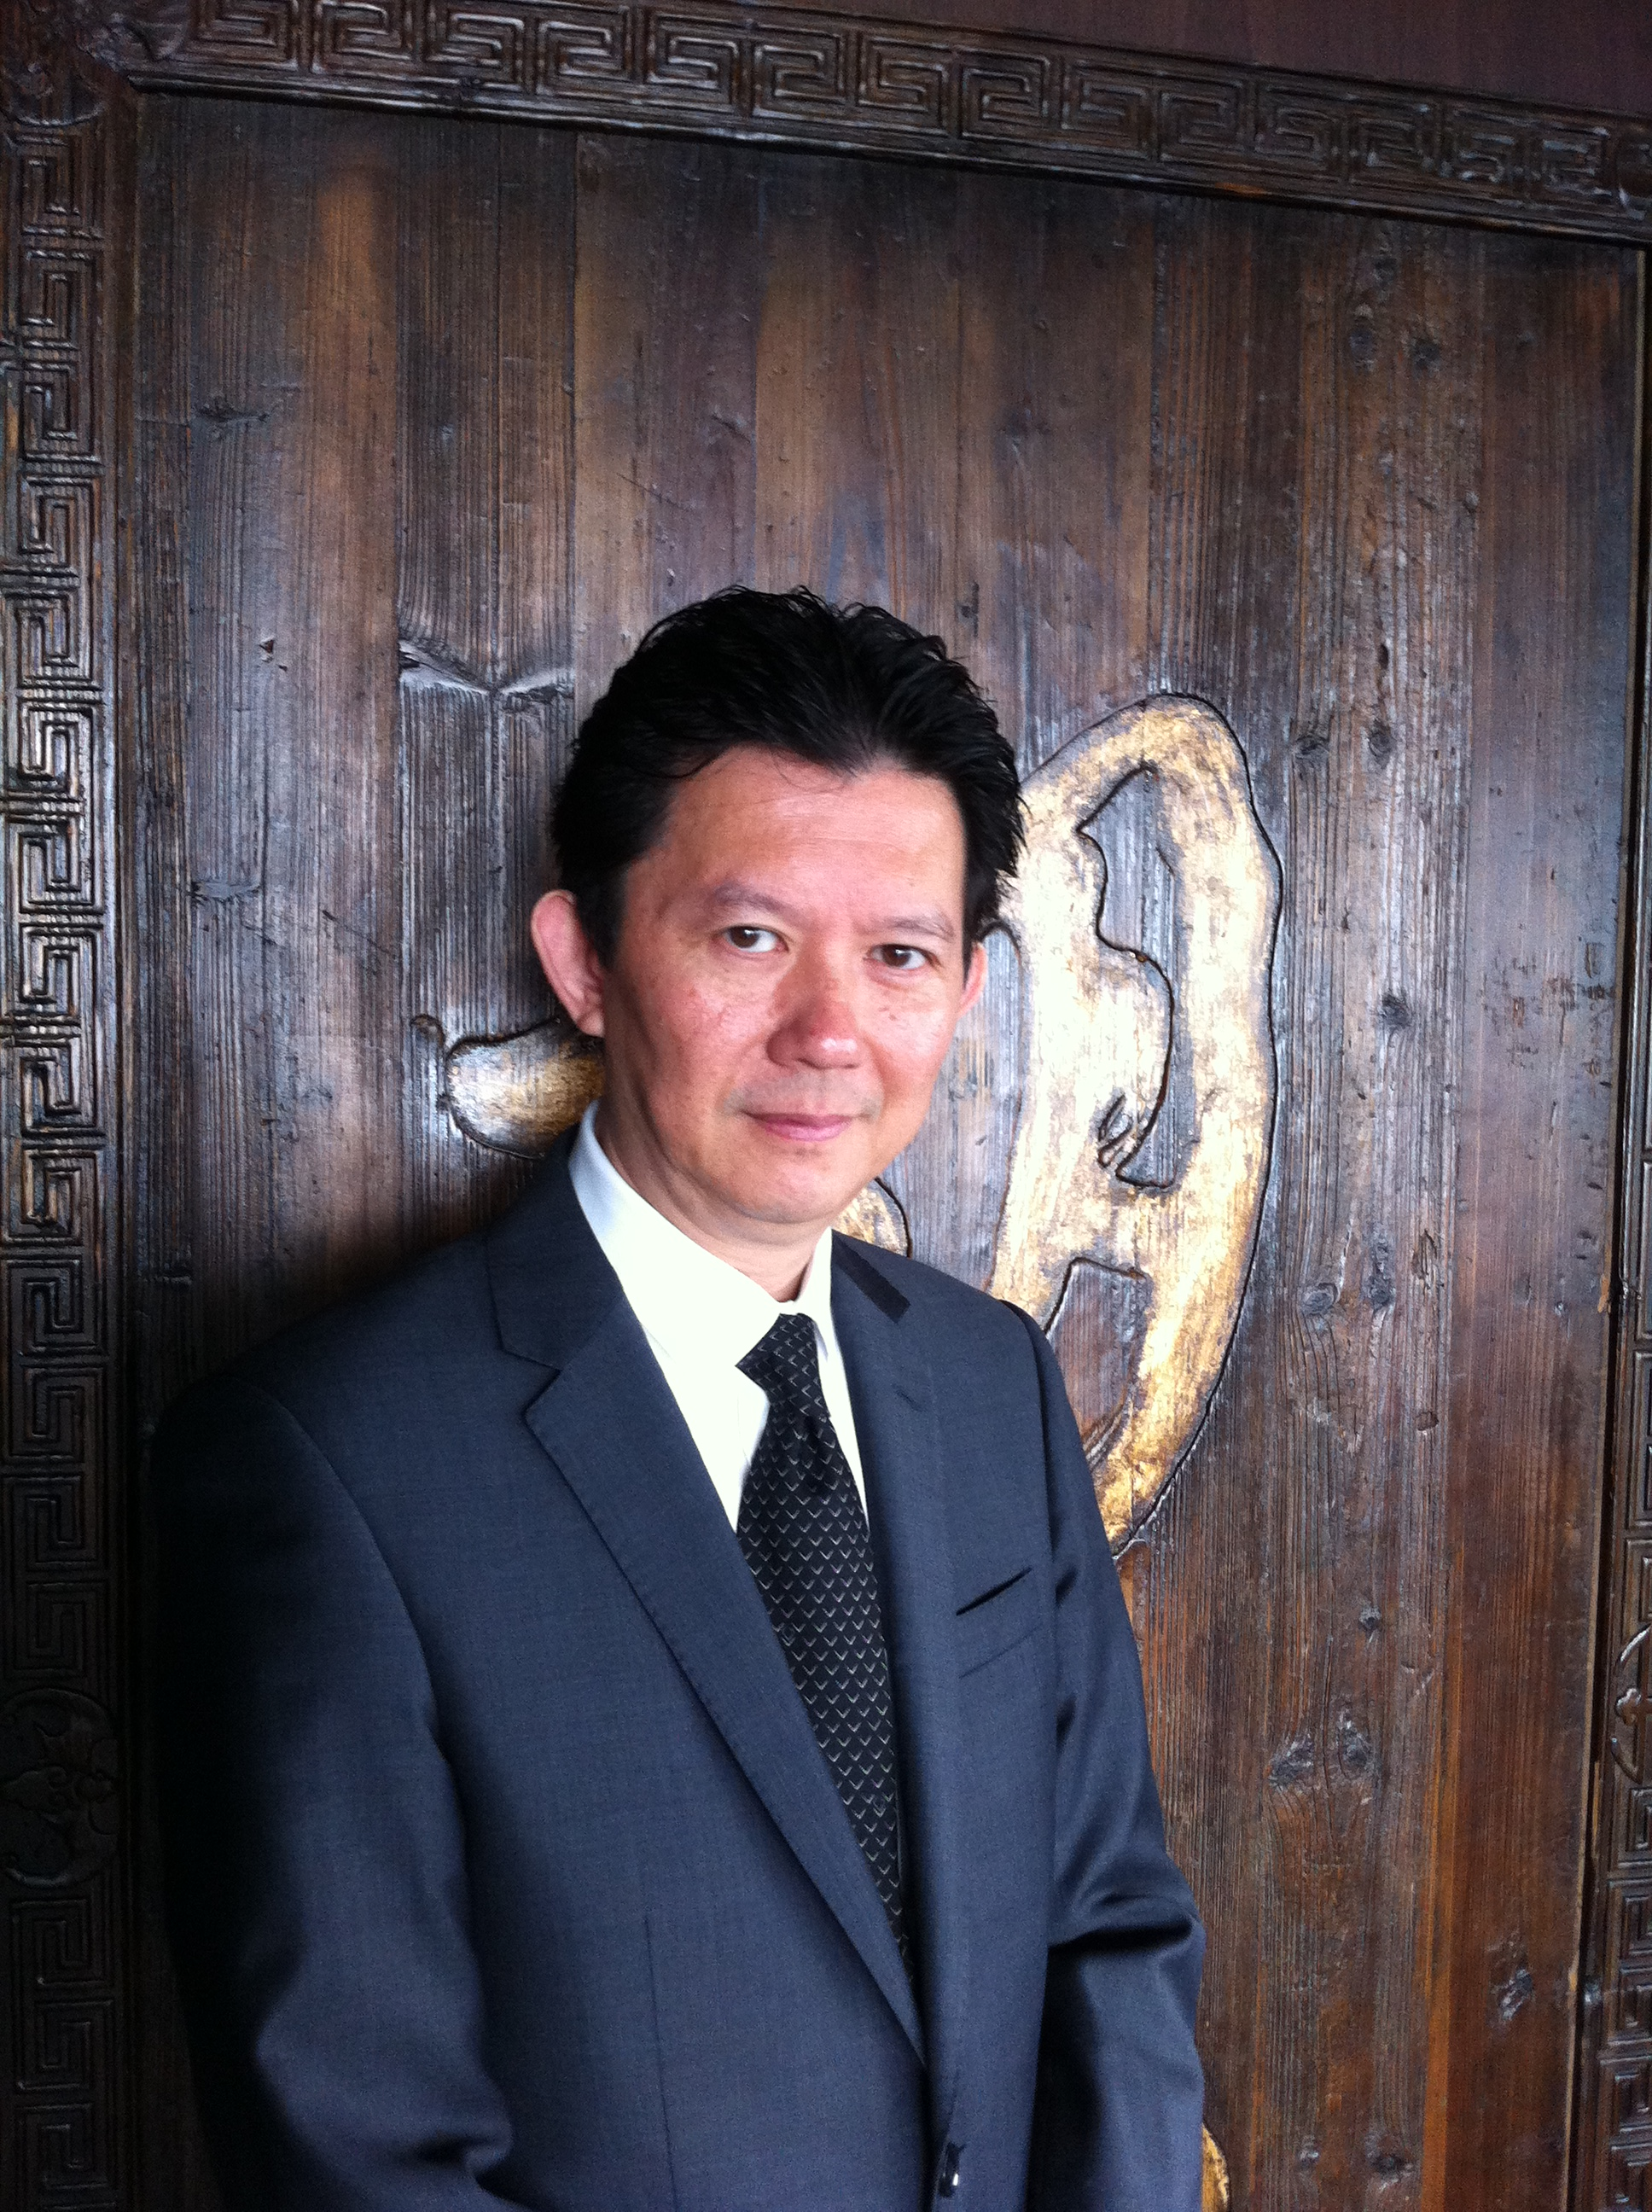 Hutong general manager, Tony Chan